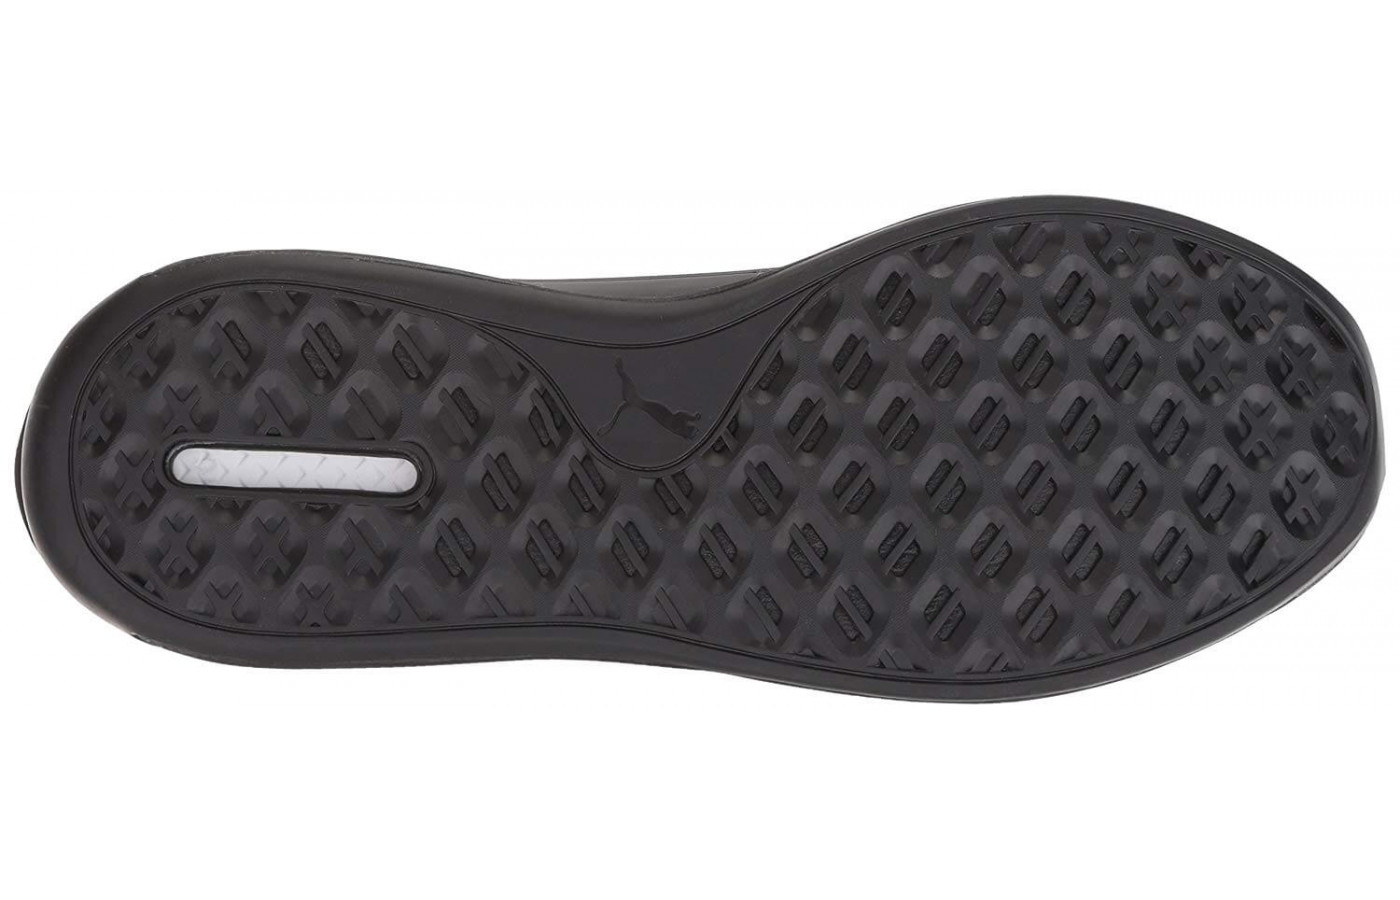 The Ignite Limitless SR features a waffle-shaped outsole for better grip